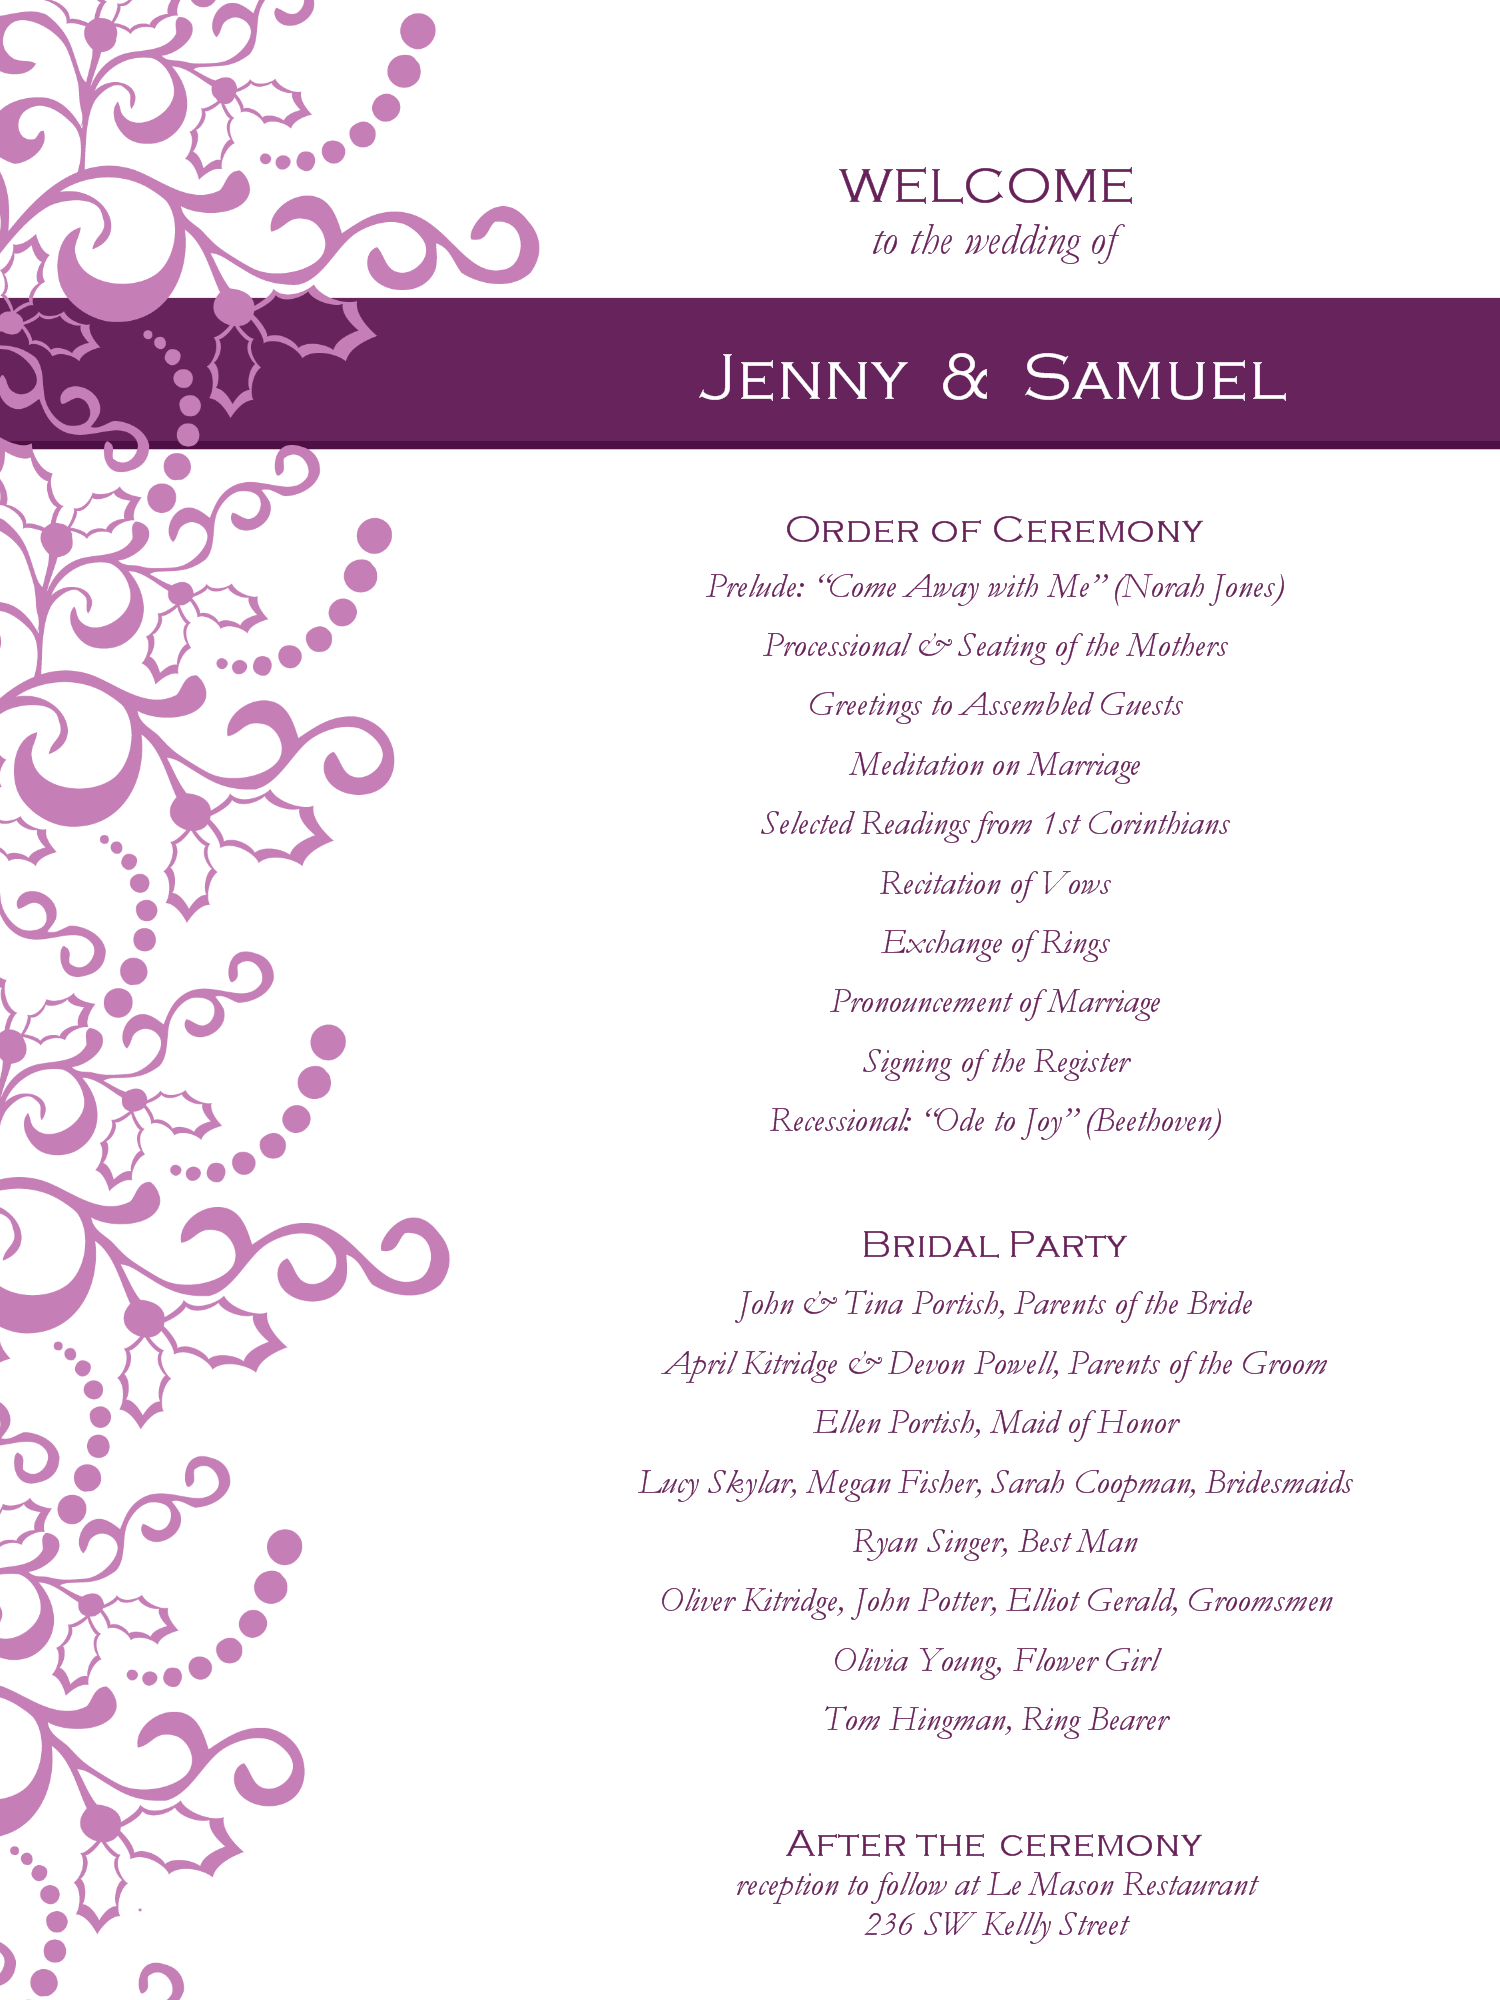 Free wedding program templates | Free Wedding Program Template ...